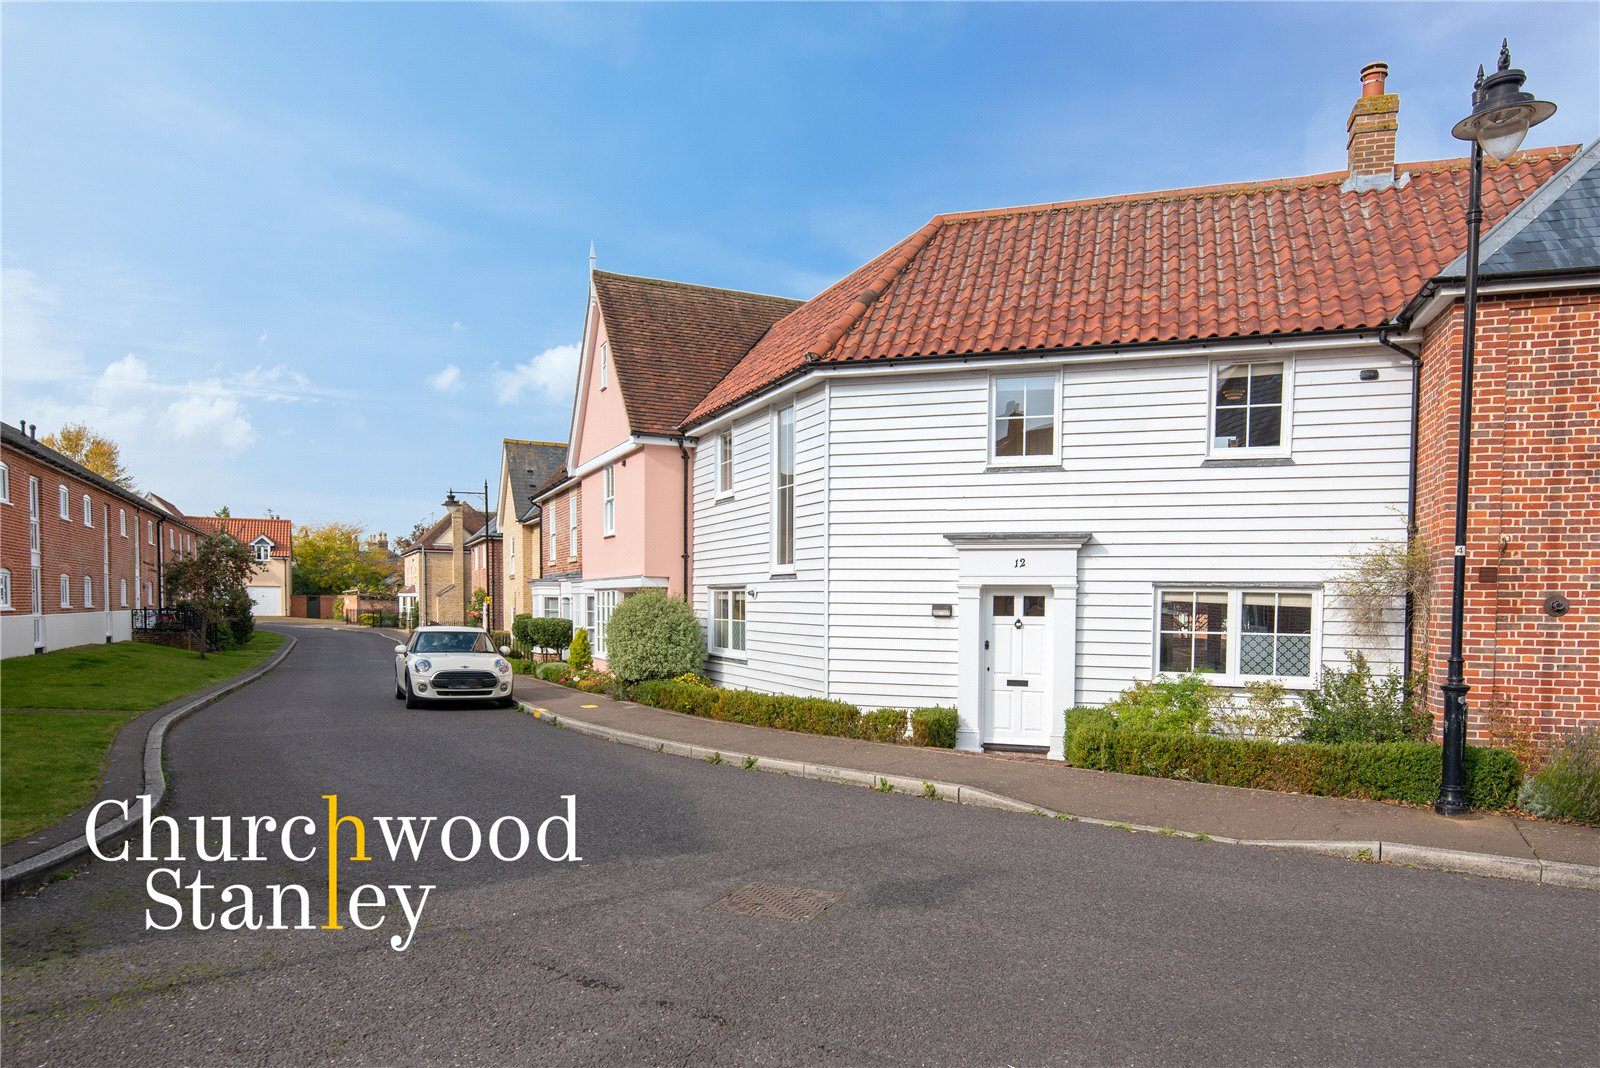 2 bed terraced house for sale in Kiln Lane, Manningtree, Essex, CO11